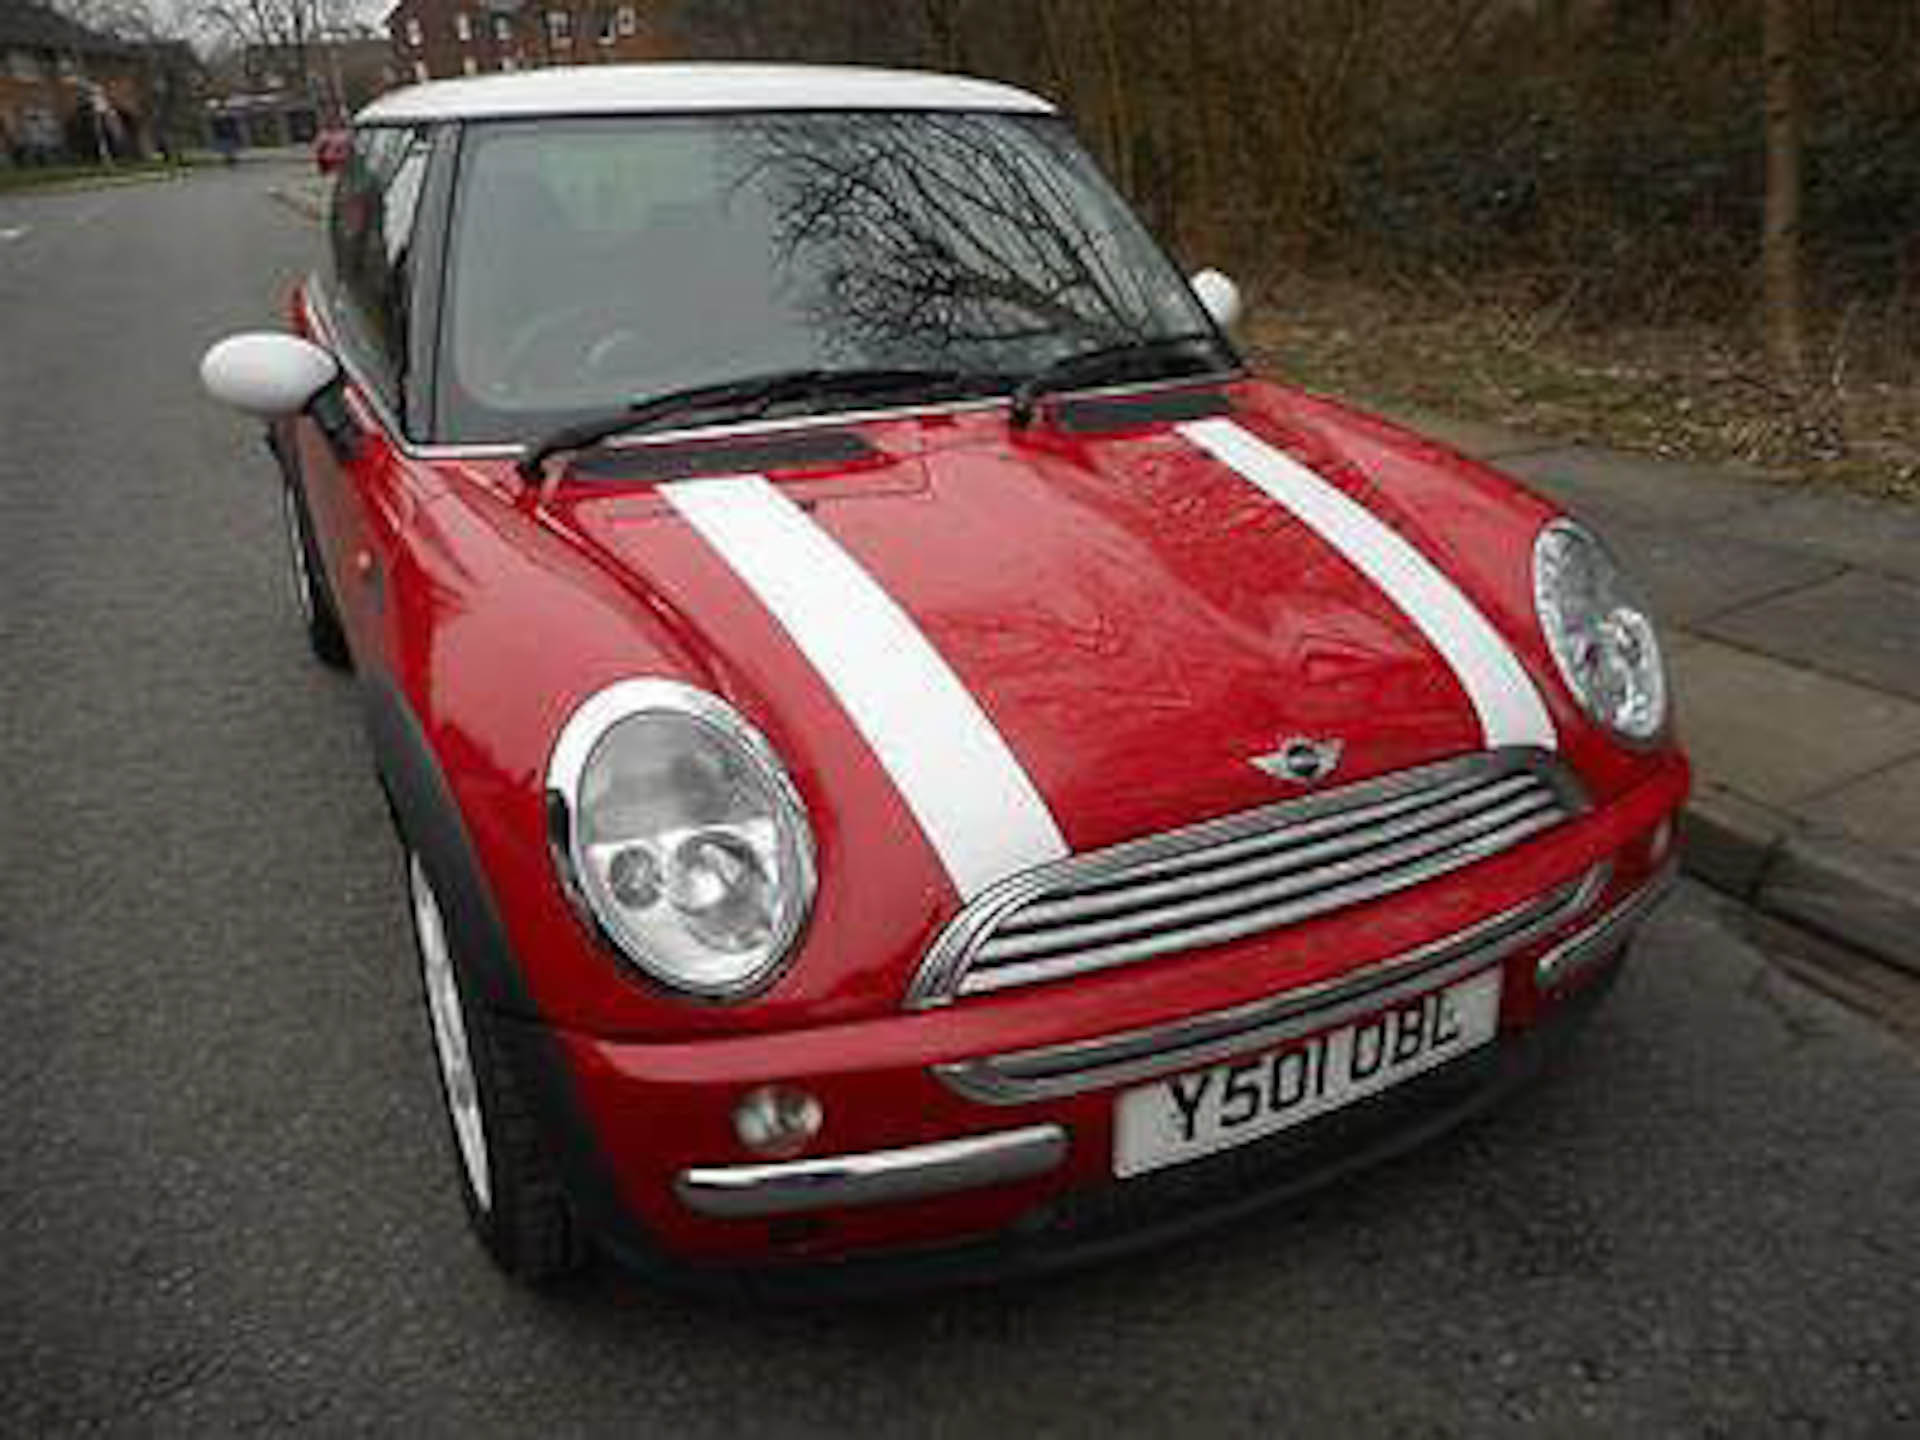 Photo of Red Y Reg BMW MINI Cooper R50 Registration Number Y501OBL image 1